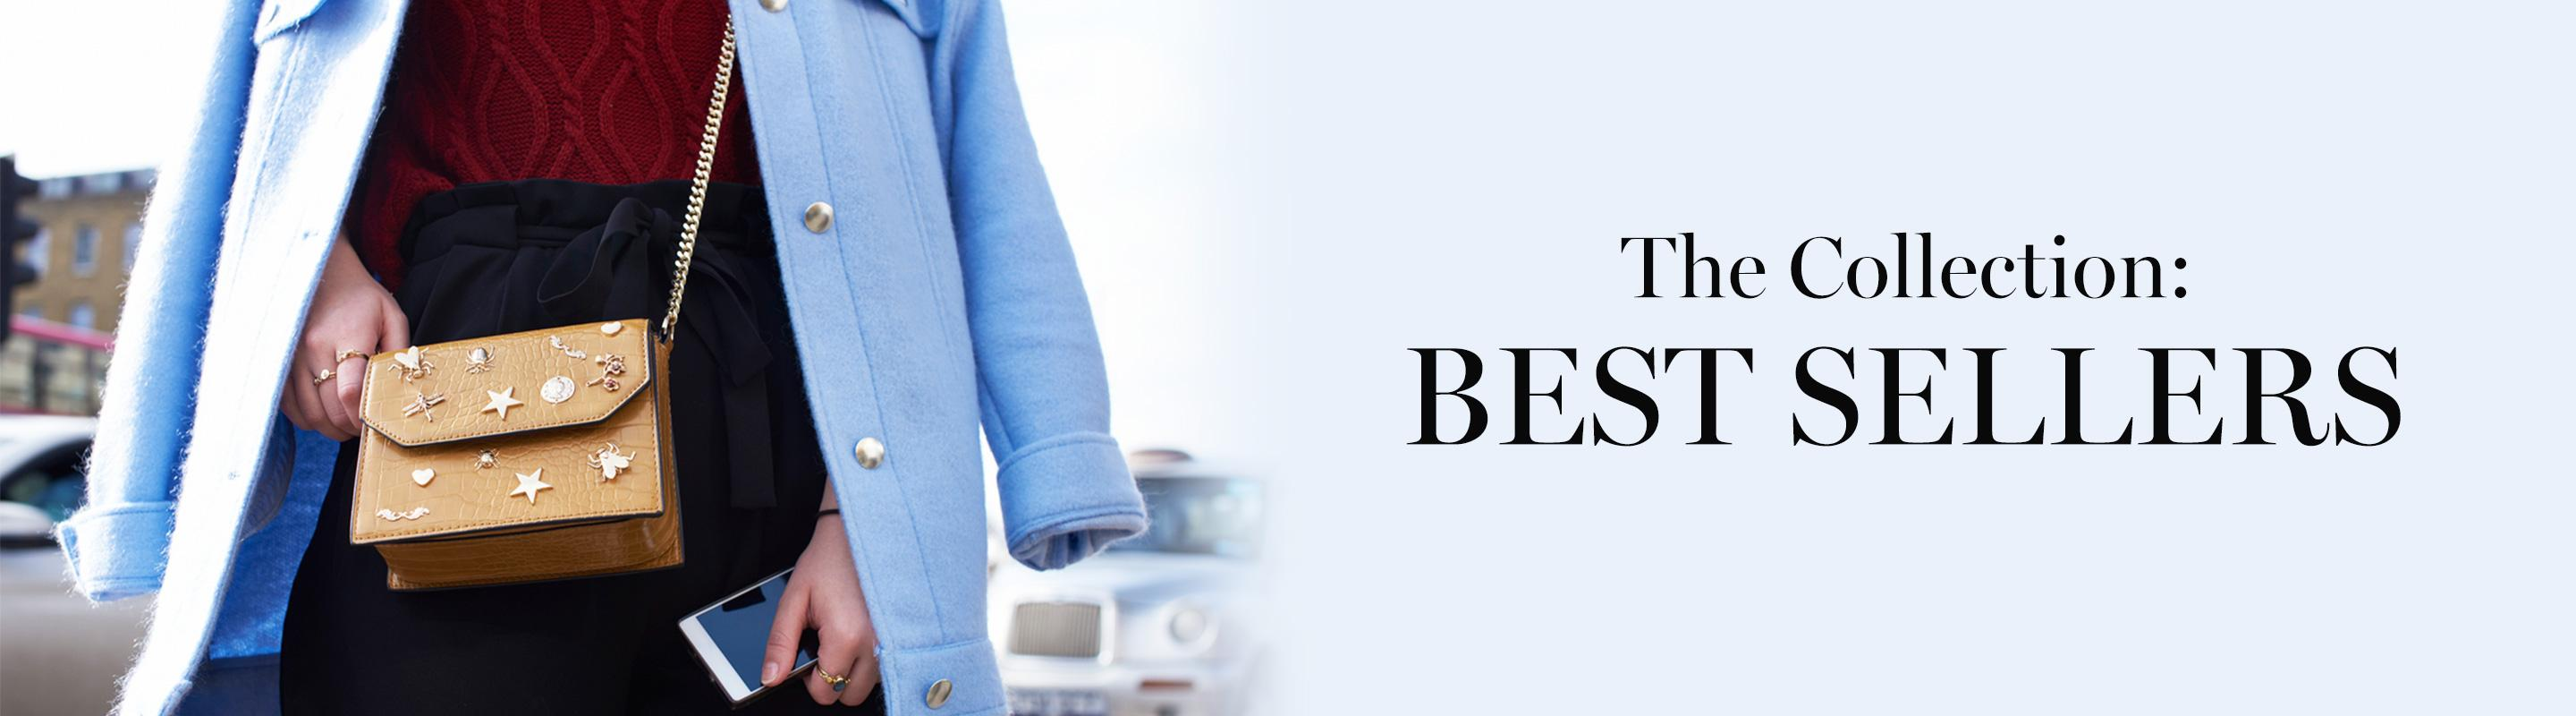 The Collection: Best Sellers